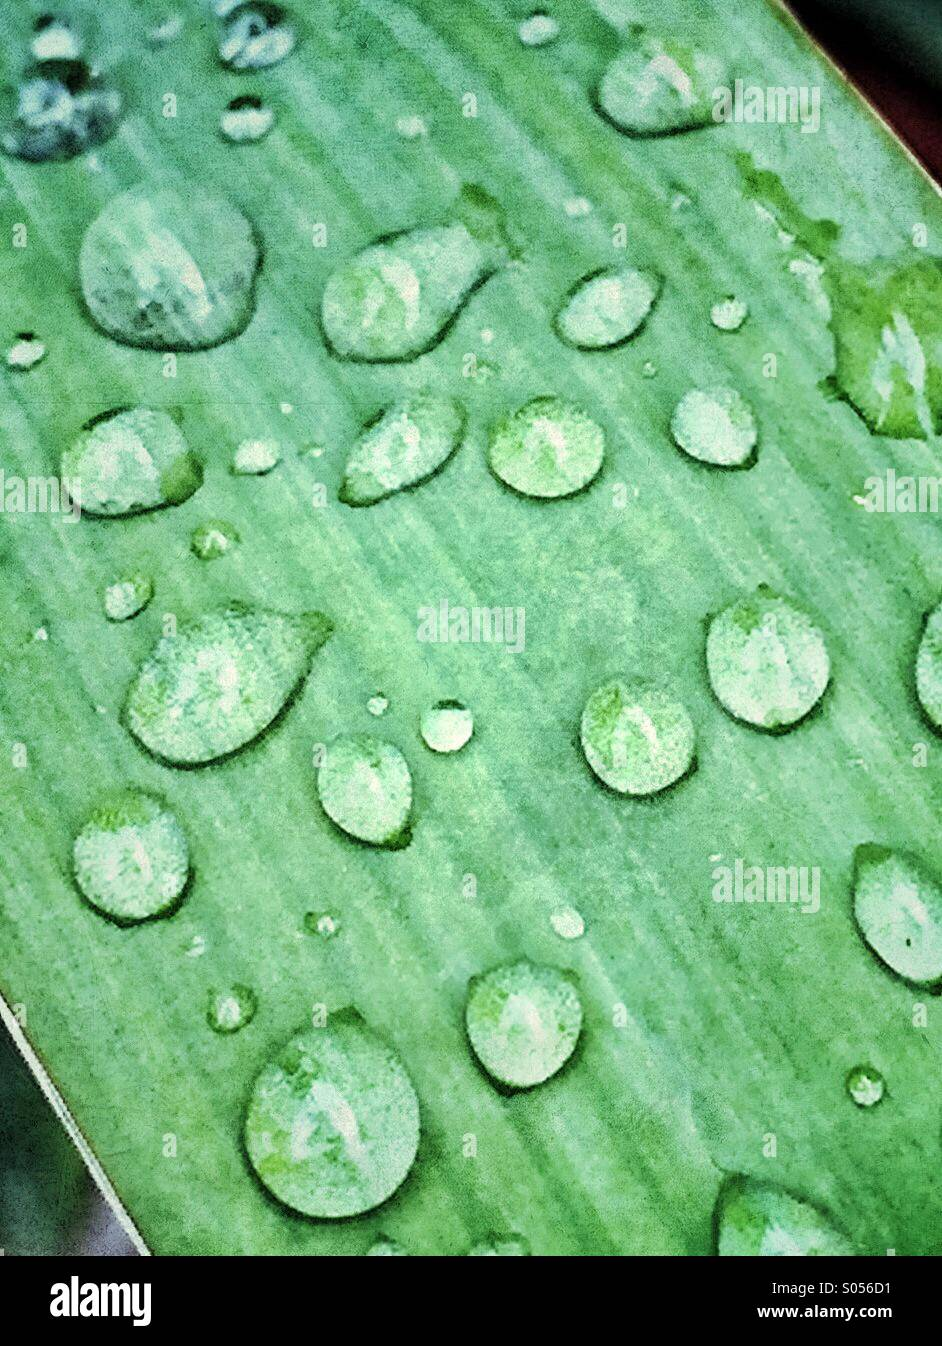 Drops of rain on the leaf of a yucca plant - Stock Image